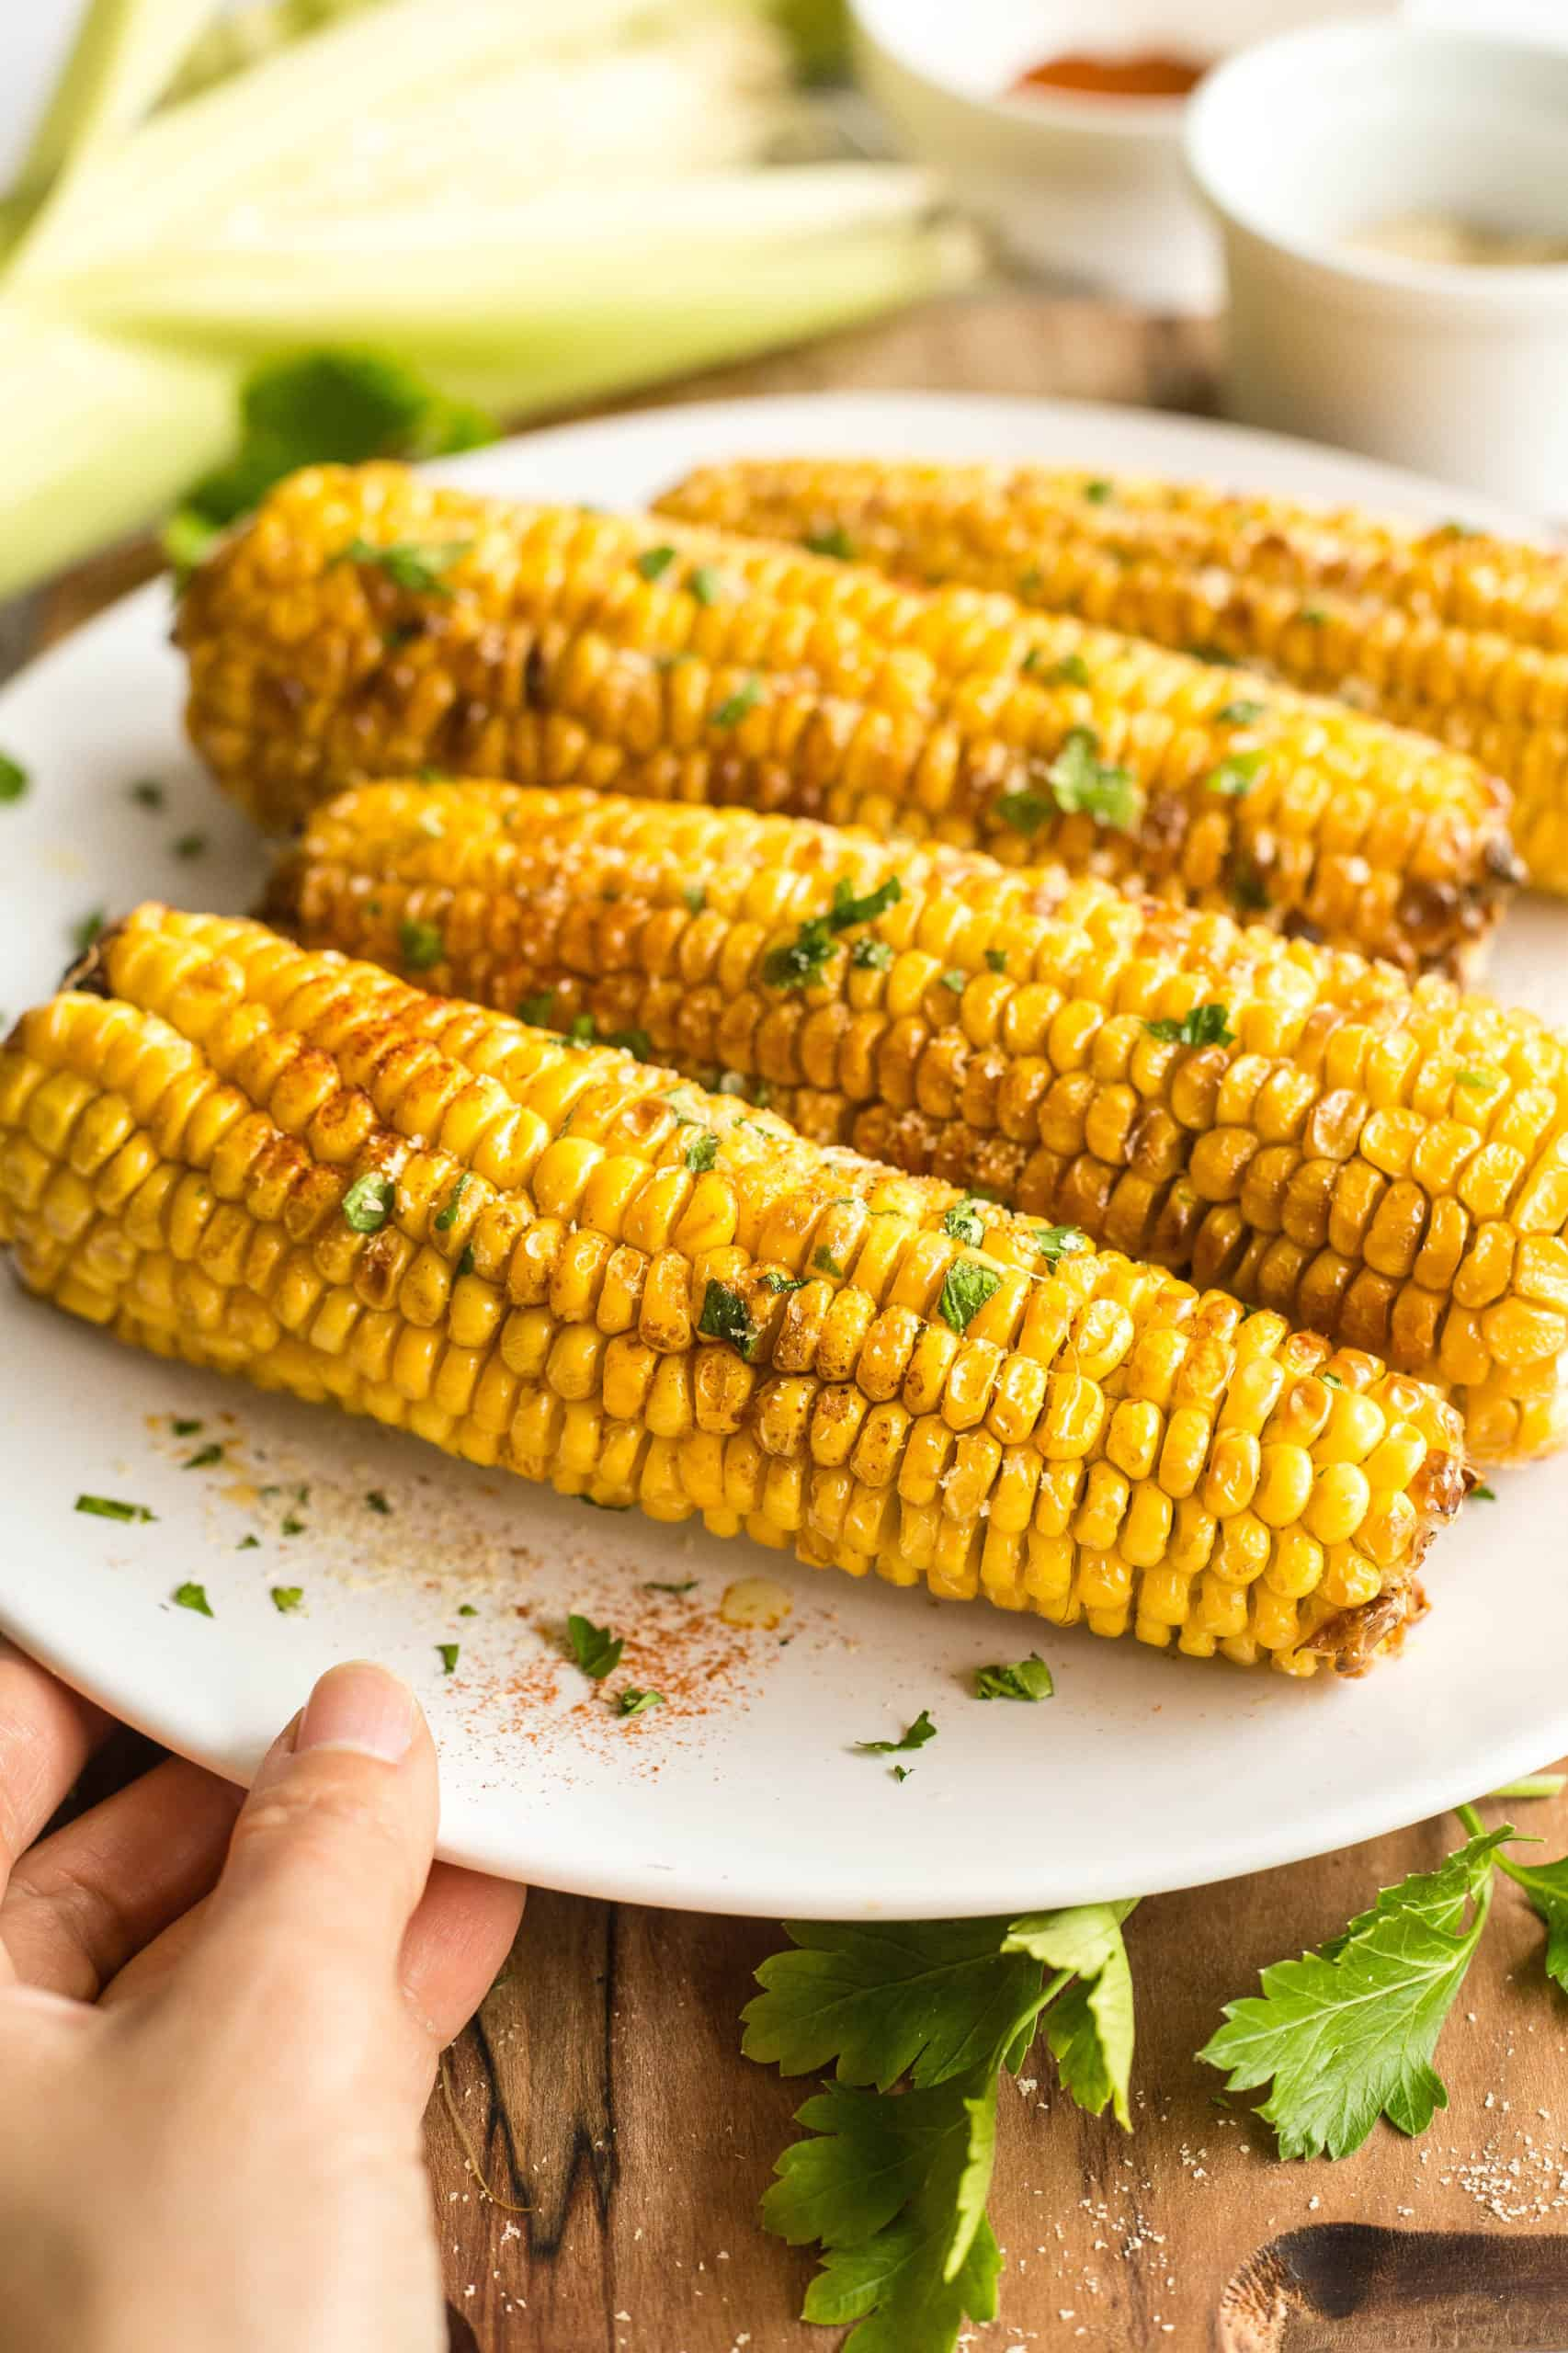 Hand holding a plate of freshly cooked corn on the cob sprinkled with chopped fresh parsley.